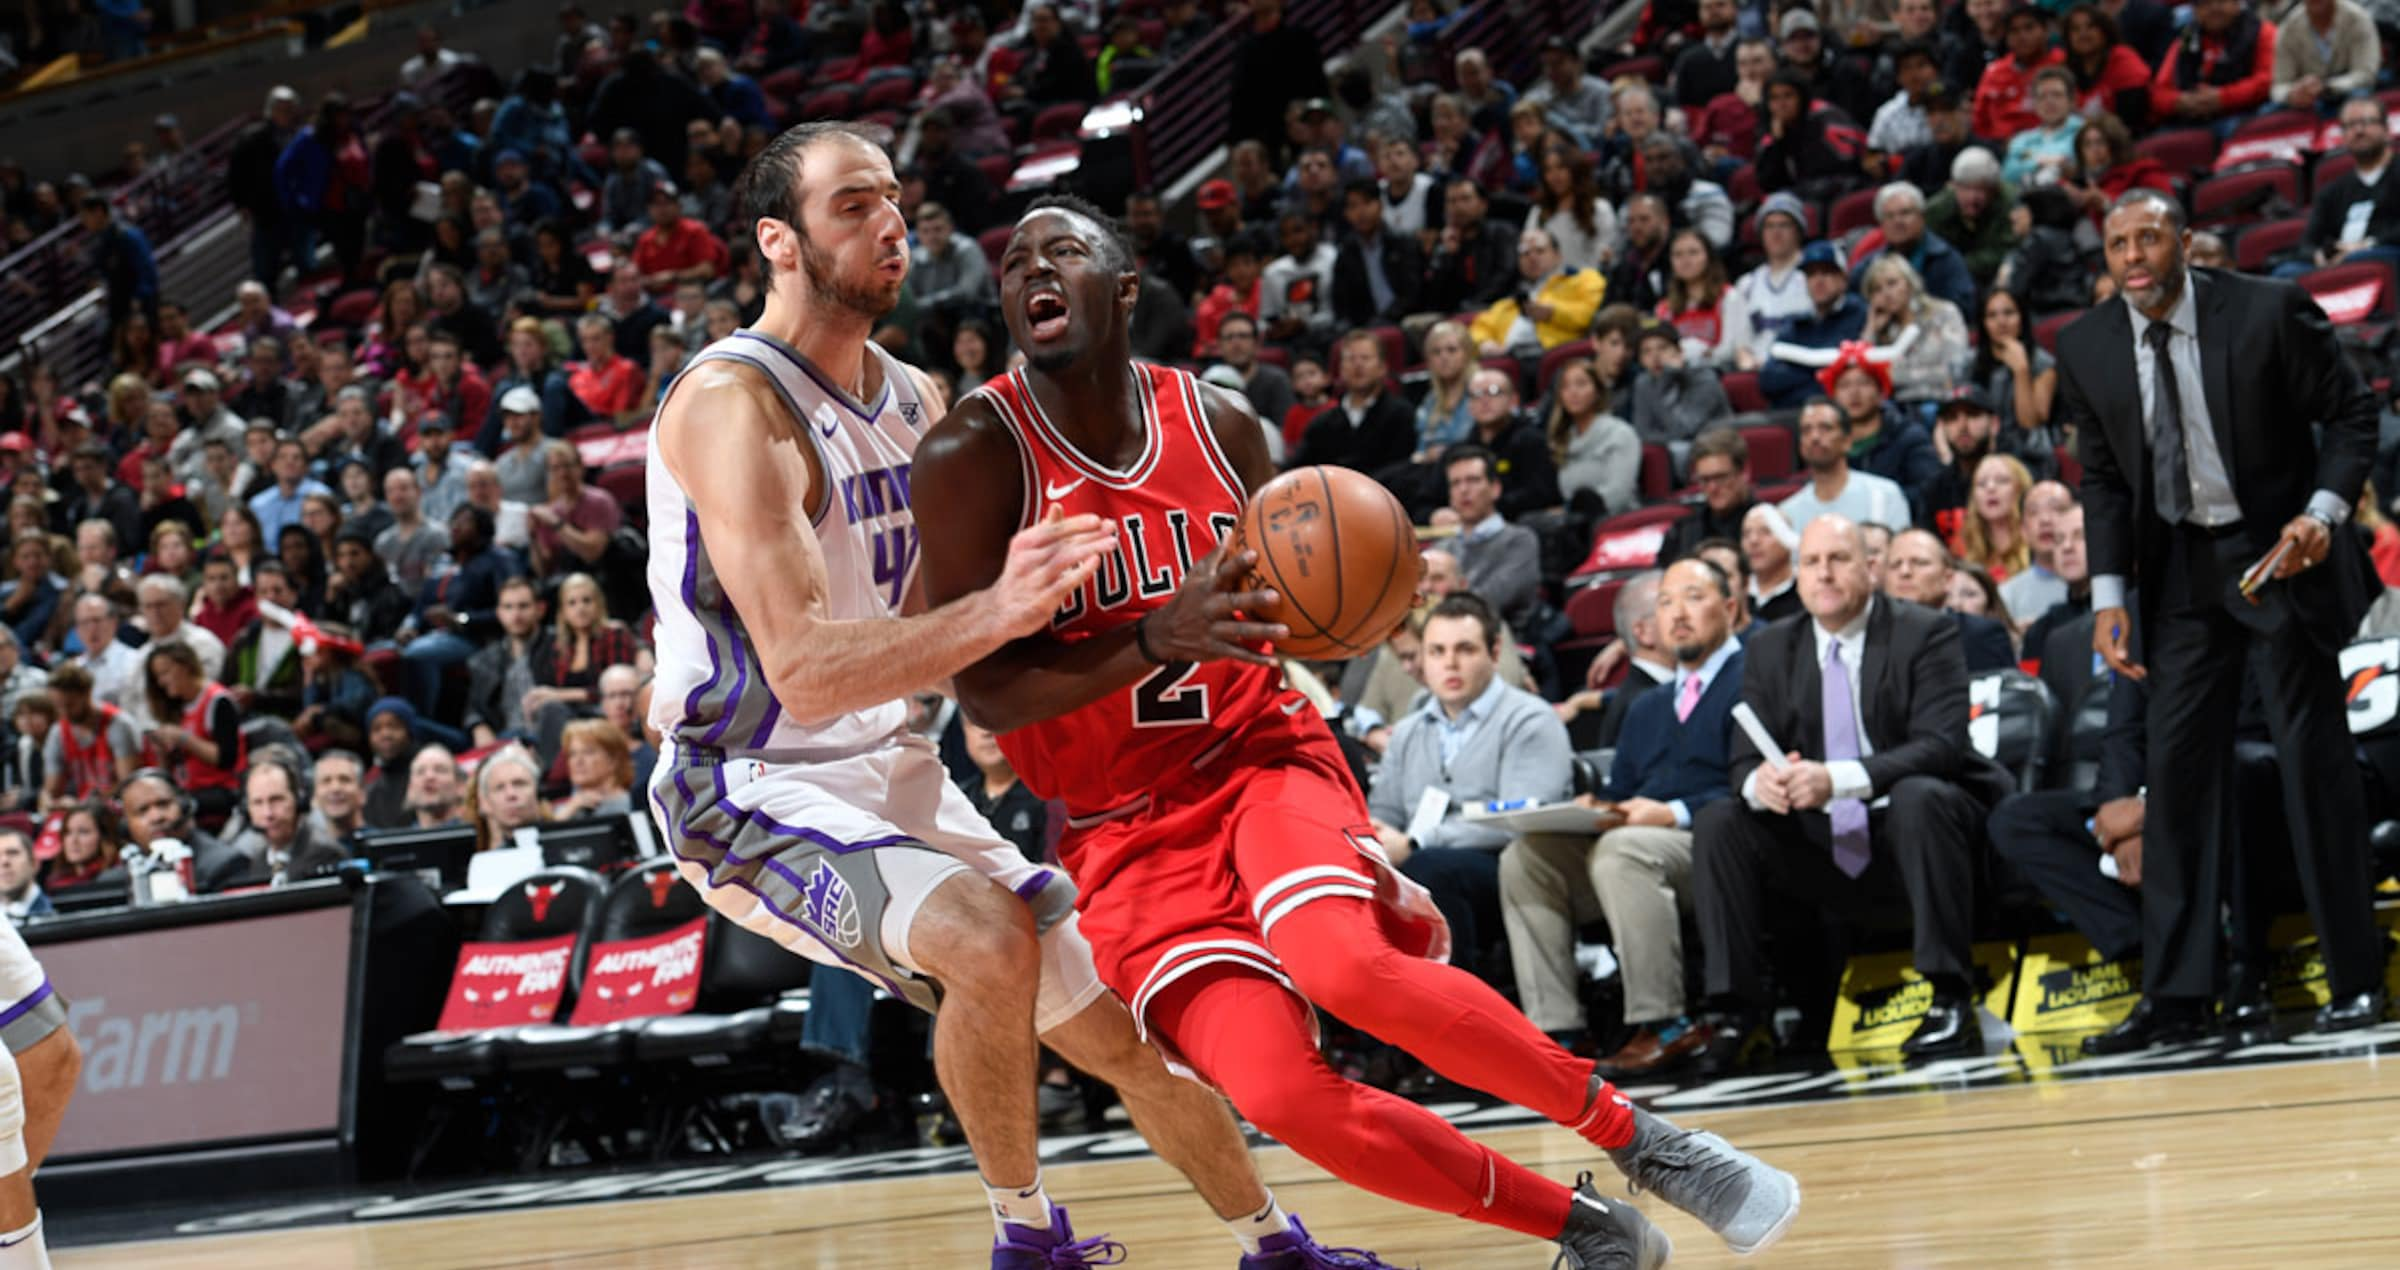 Jerian Grant of the Chicago Bulls handles the ball against Kosta Koufos of the Sacramento Kings, December 1, 2017 at the United Center